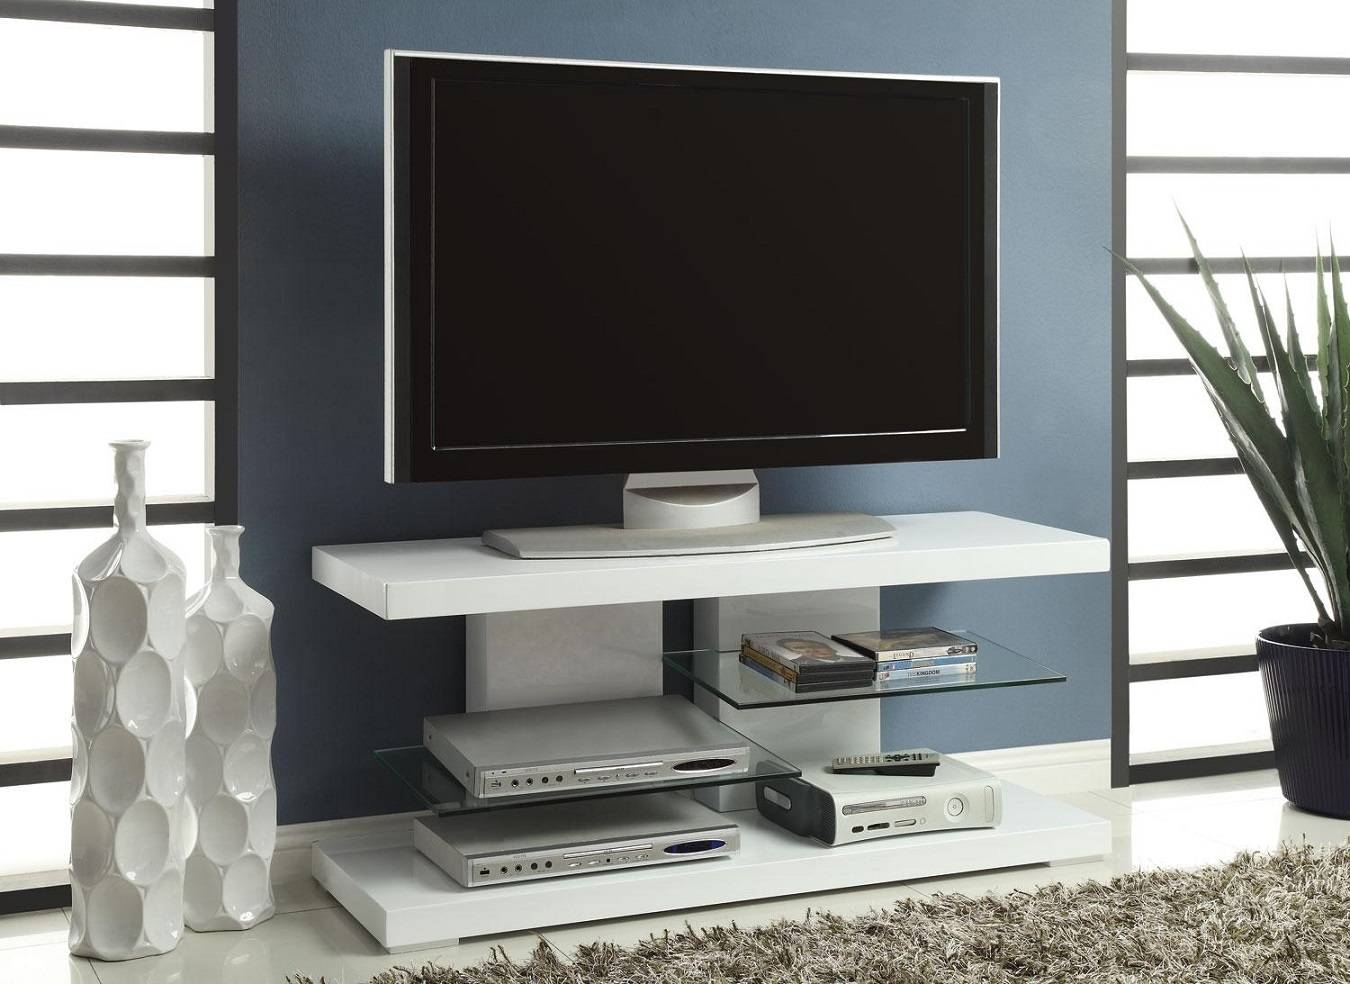 White Painted Plywood Flat Screen Tv Stand With Tempered Glass With Regard To Stylish Tv Stands (View 7 of 15)